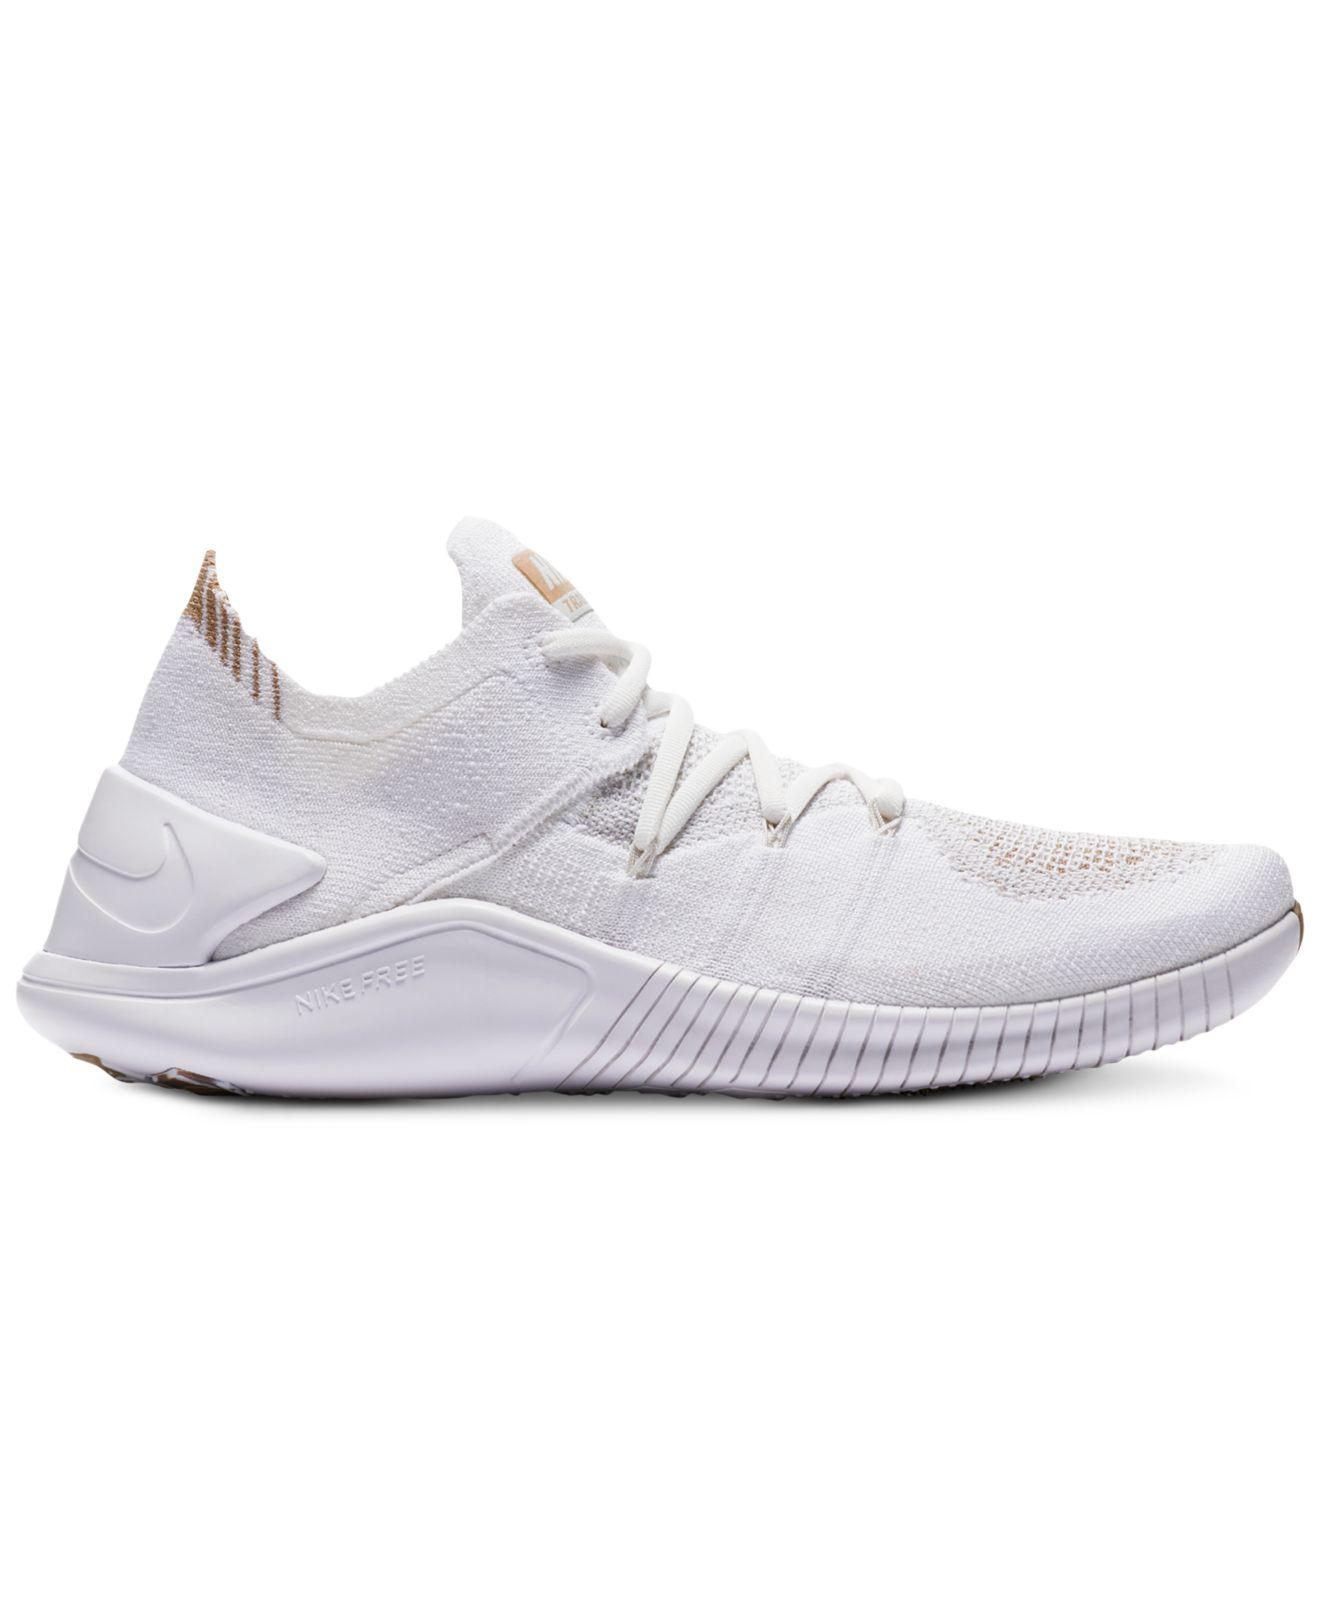 60b662ca55a5 Lyst - Nike Free Tr Flyknit 3 Amp Training Sneakers From Finish Line ...